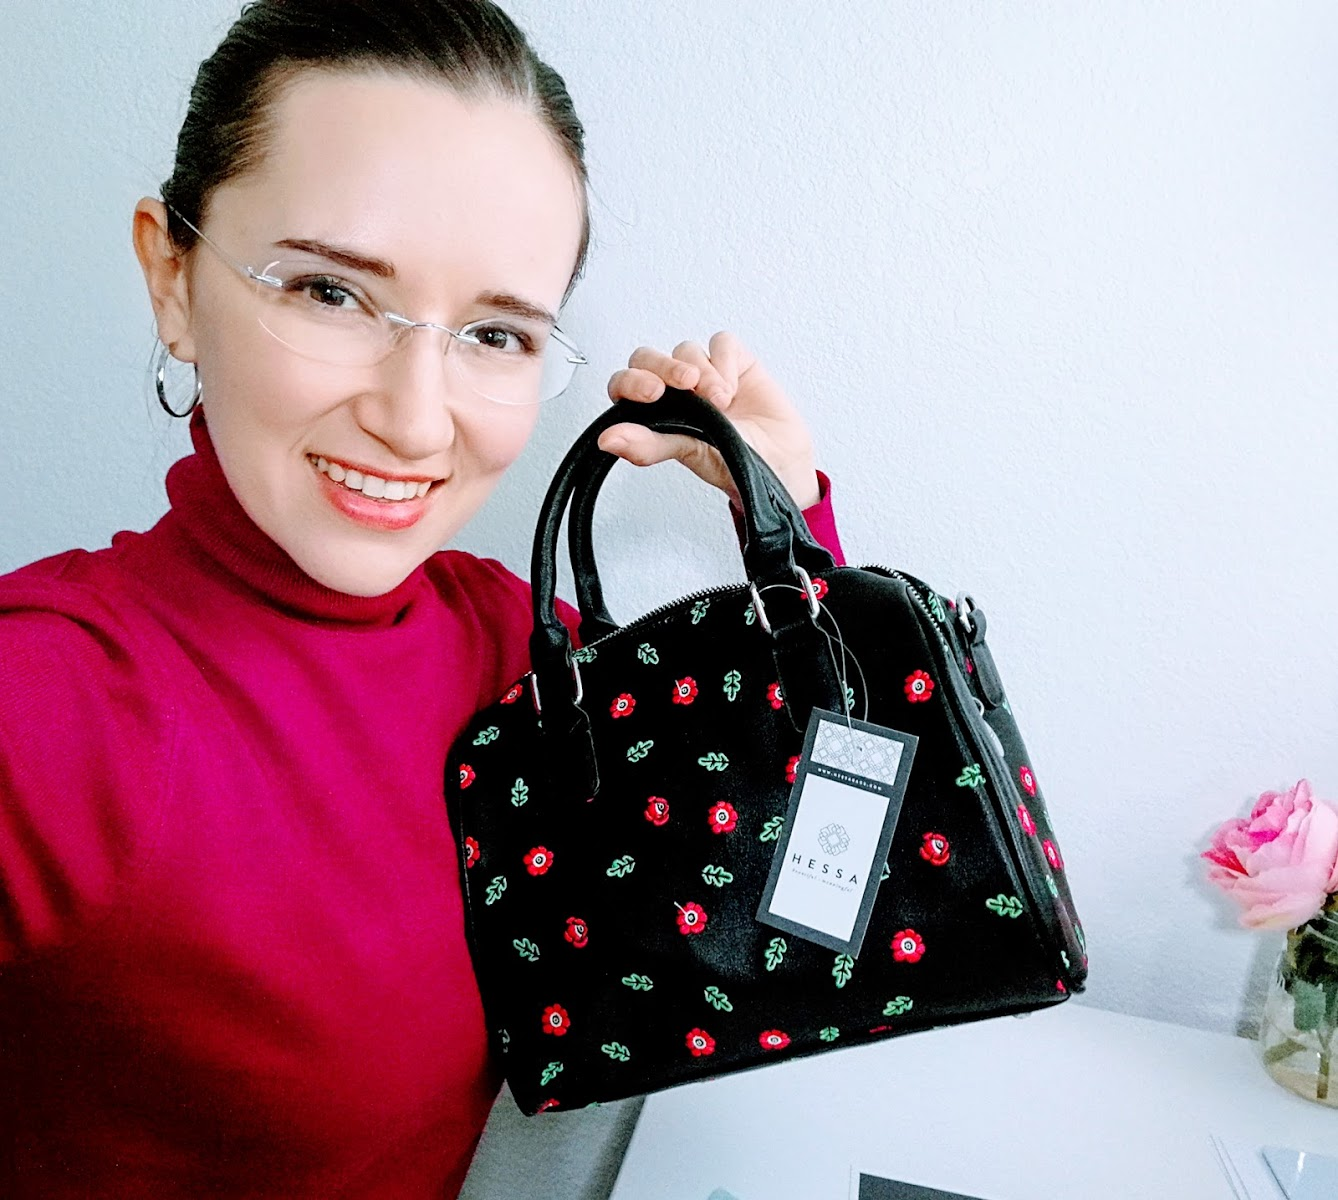 Oksancia holding Poppy pattern embroidered bag by Hessa Bags.